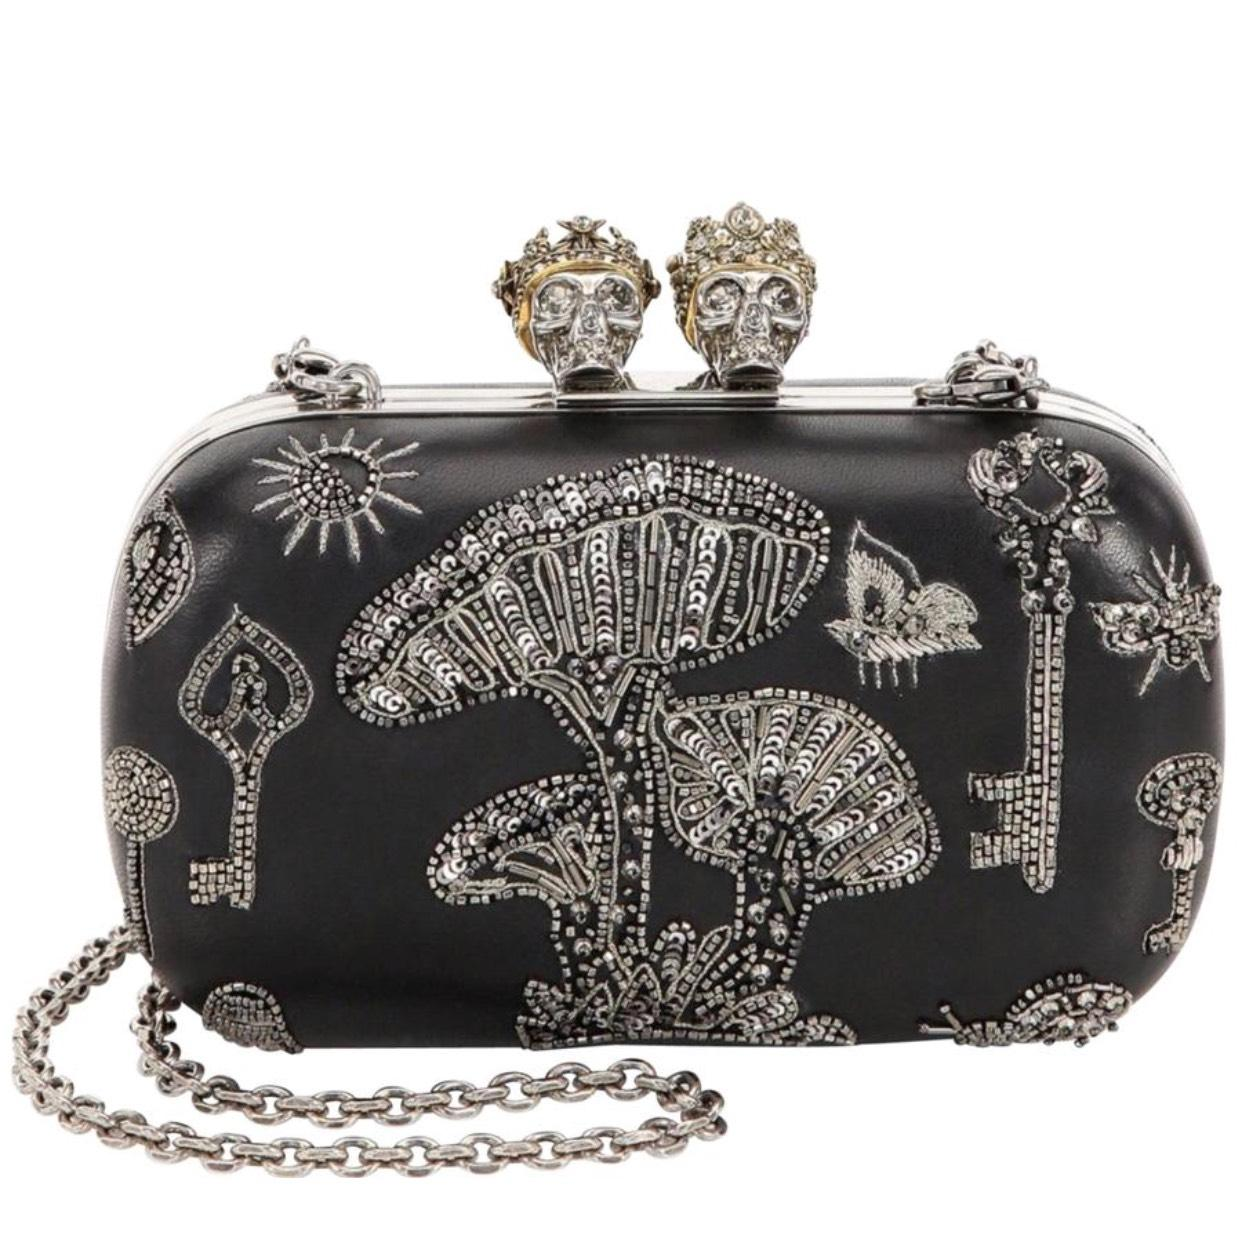 Outlet Footlocker Alexander McQueen Queen And King clutch Wholesale Price Online Free Shipping Release Dates Looking For Sale Inexpensive i27YYr